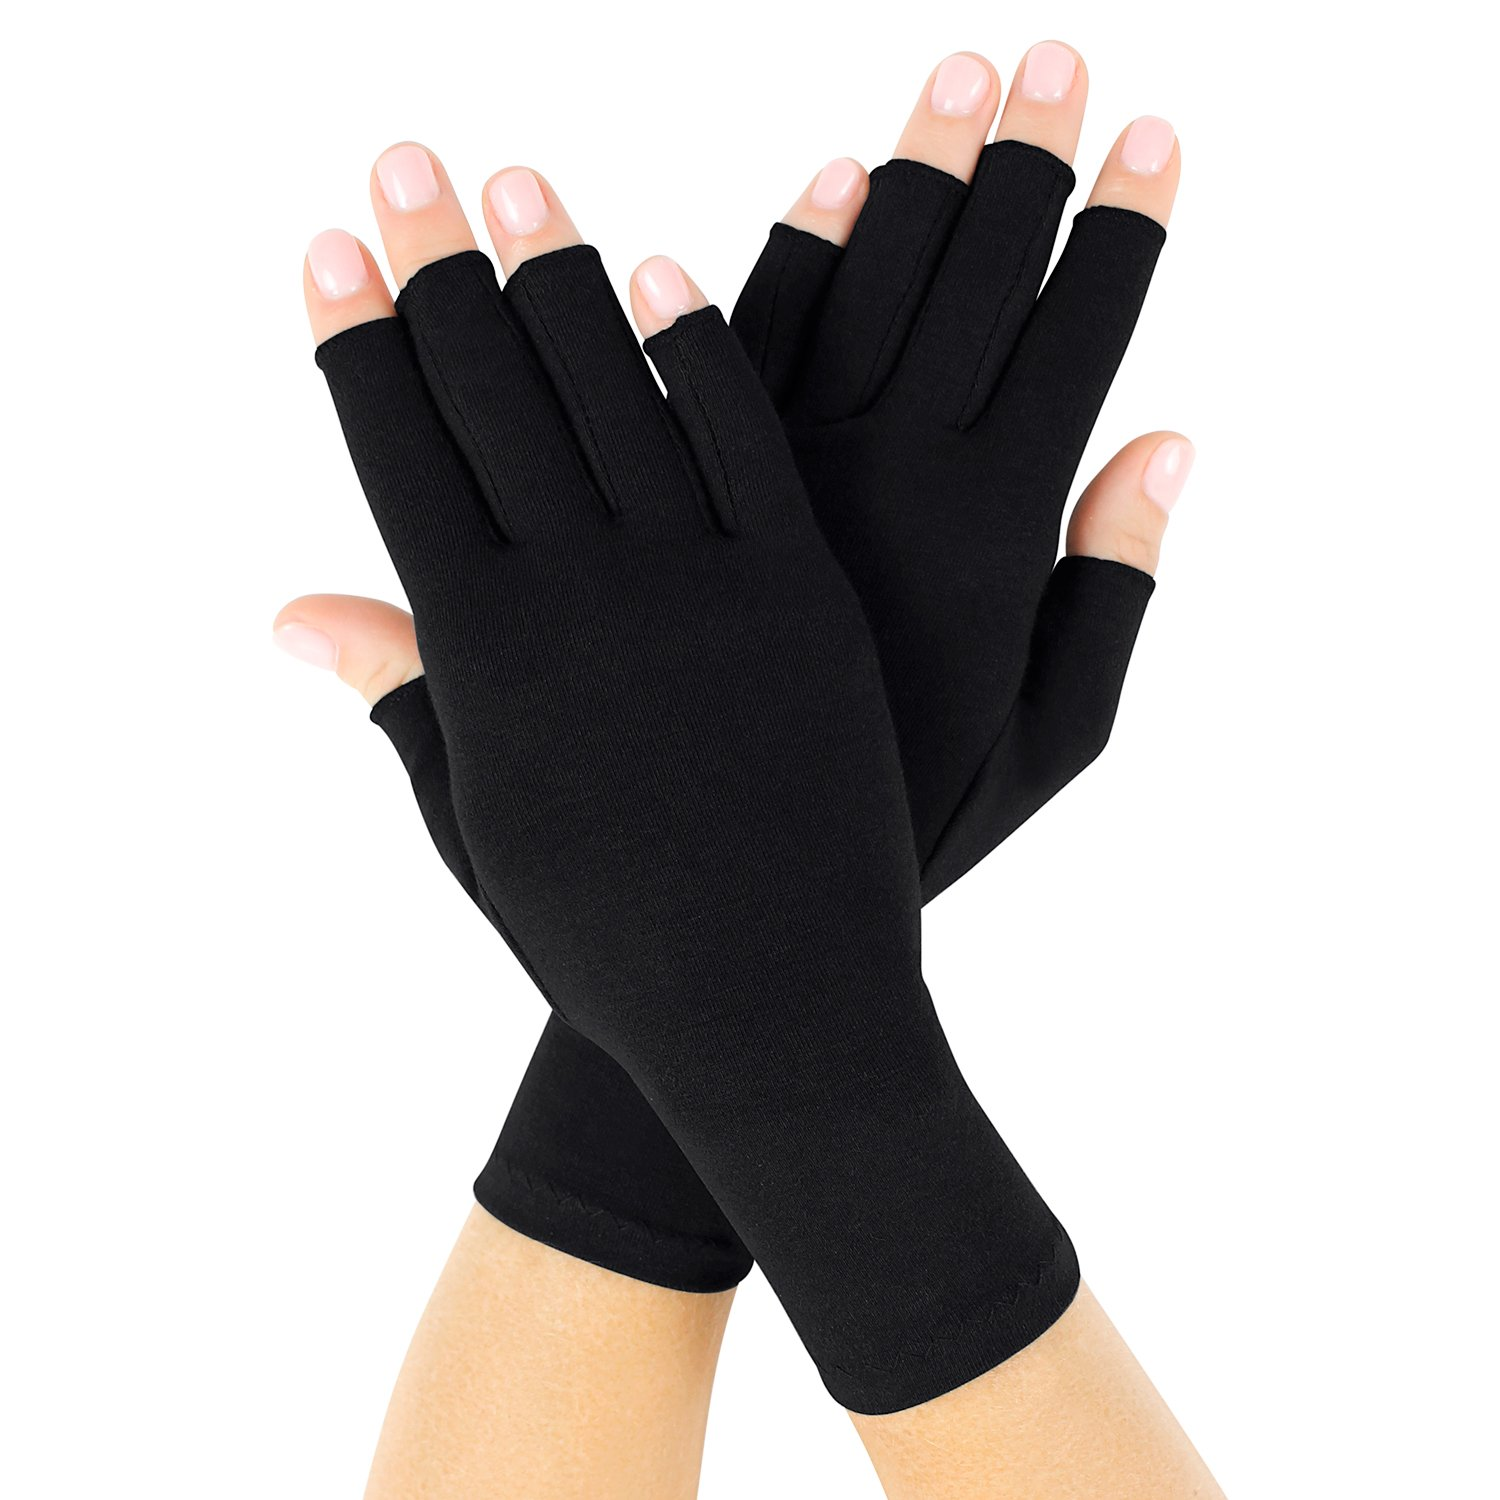 Vive Arthritis Gloves - Compression Gloves for Rheumatoid & Osteoarthritis - Black Hand Gloves Provide Arthritic Joint Pain Symptom Relief - Men & Women - Open Finger (Large)